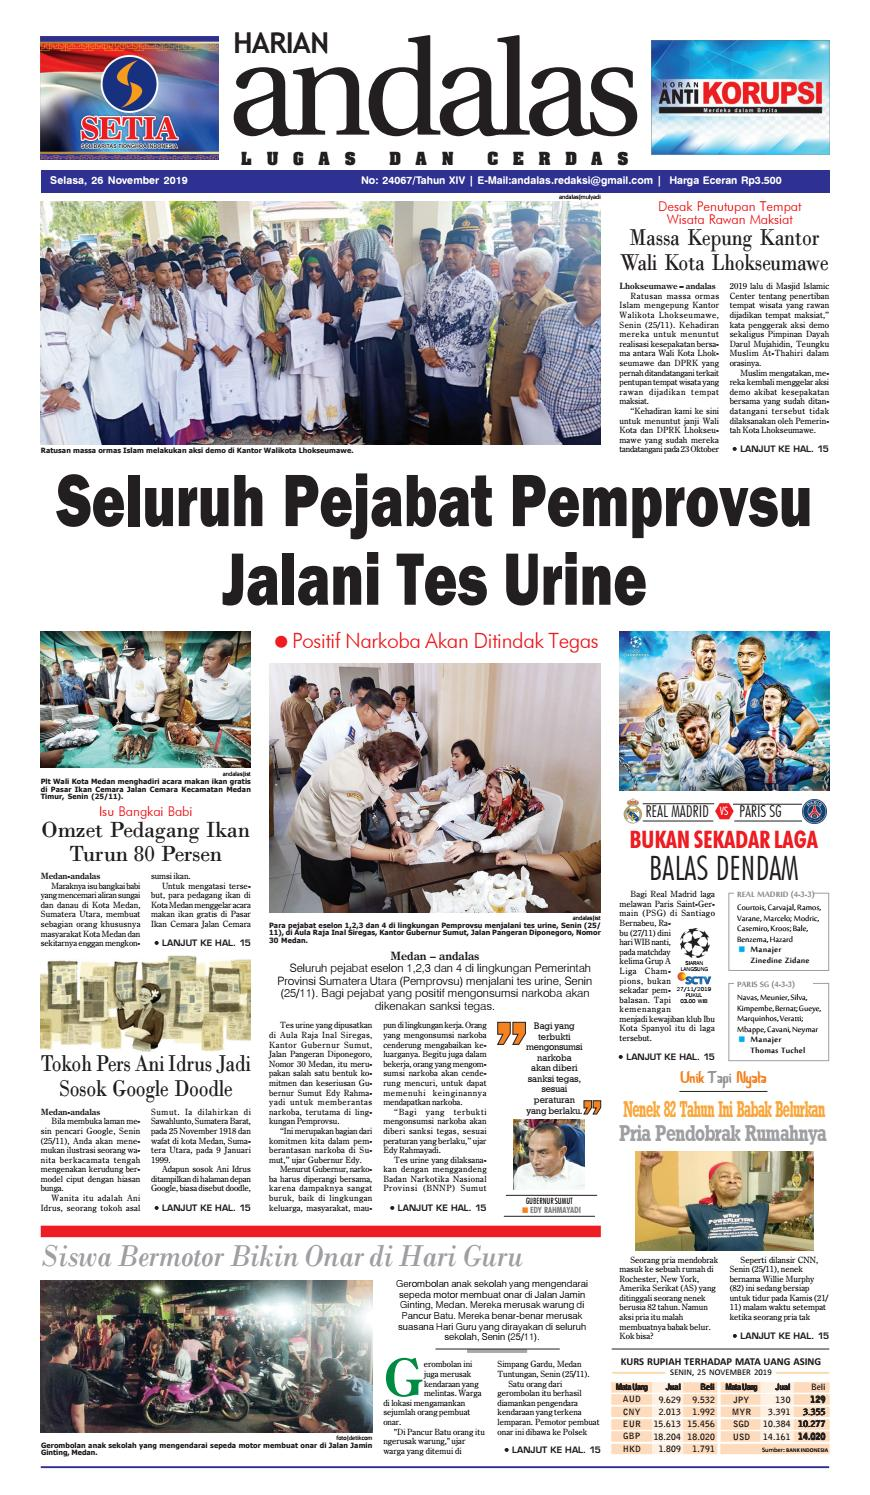 Epaper Harian Andalas 26 November 2019 By Media Andalas Issuu